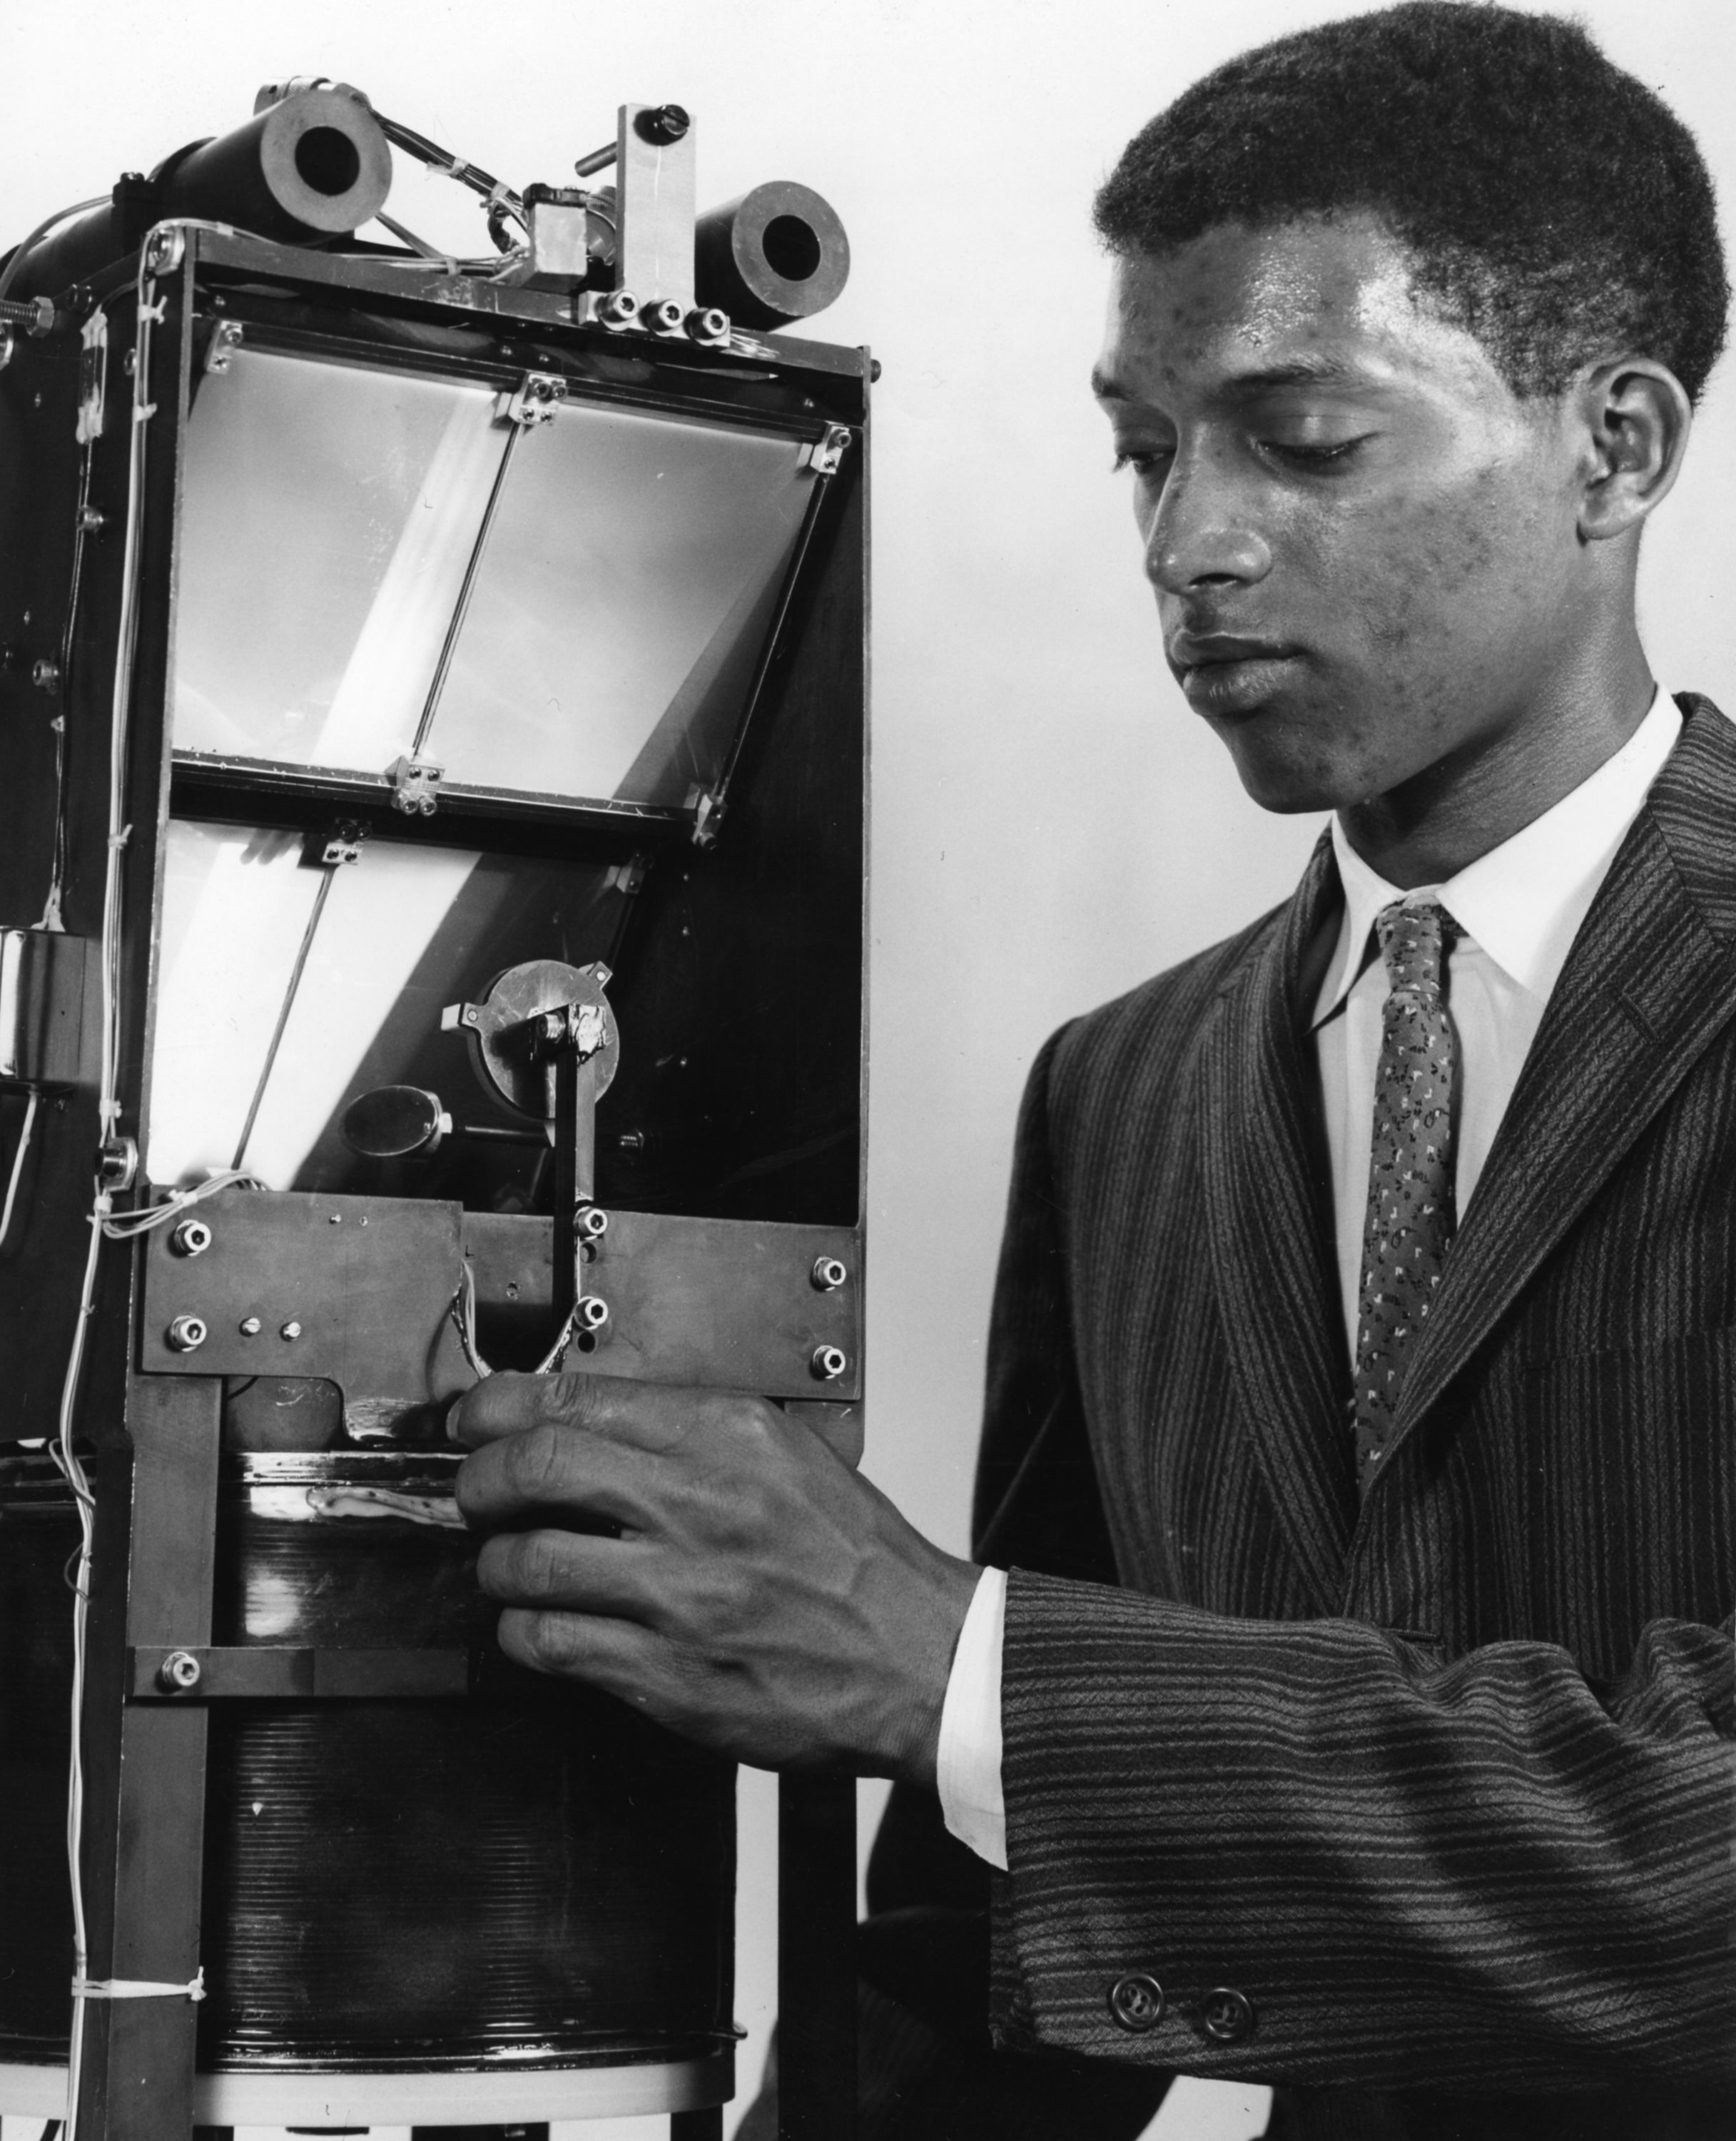 Dr. Goerge R. Curruthers, esteemed astrophysicist and inventor passes away at 81